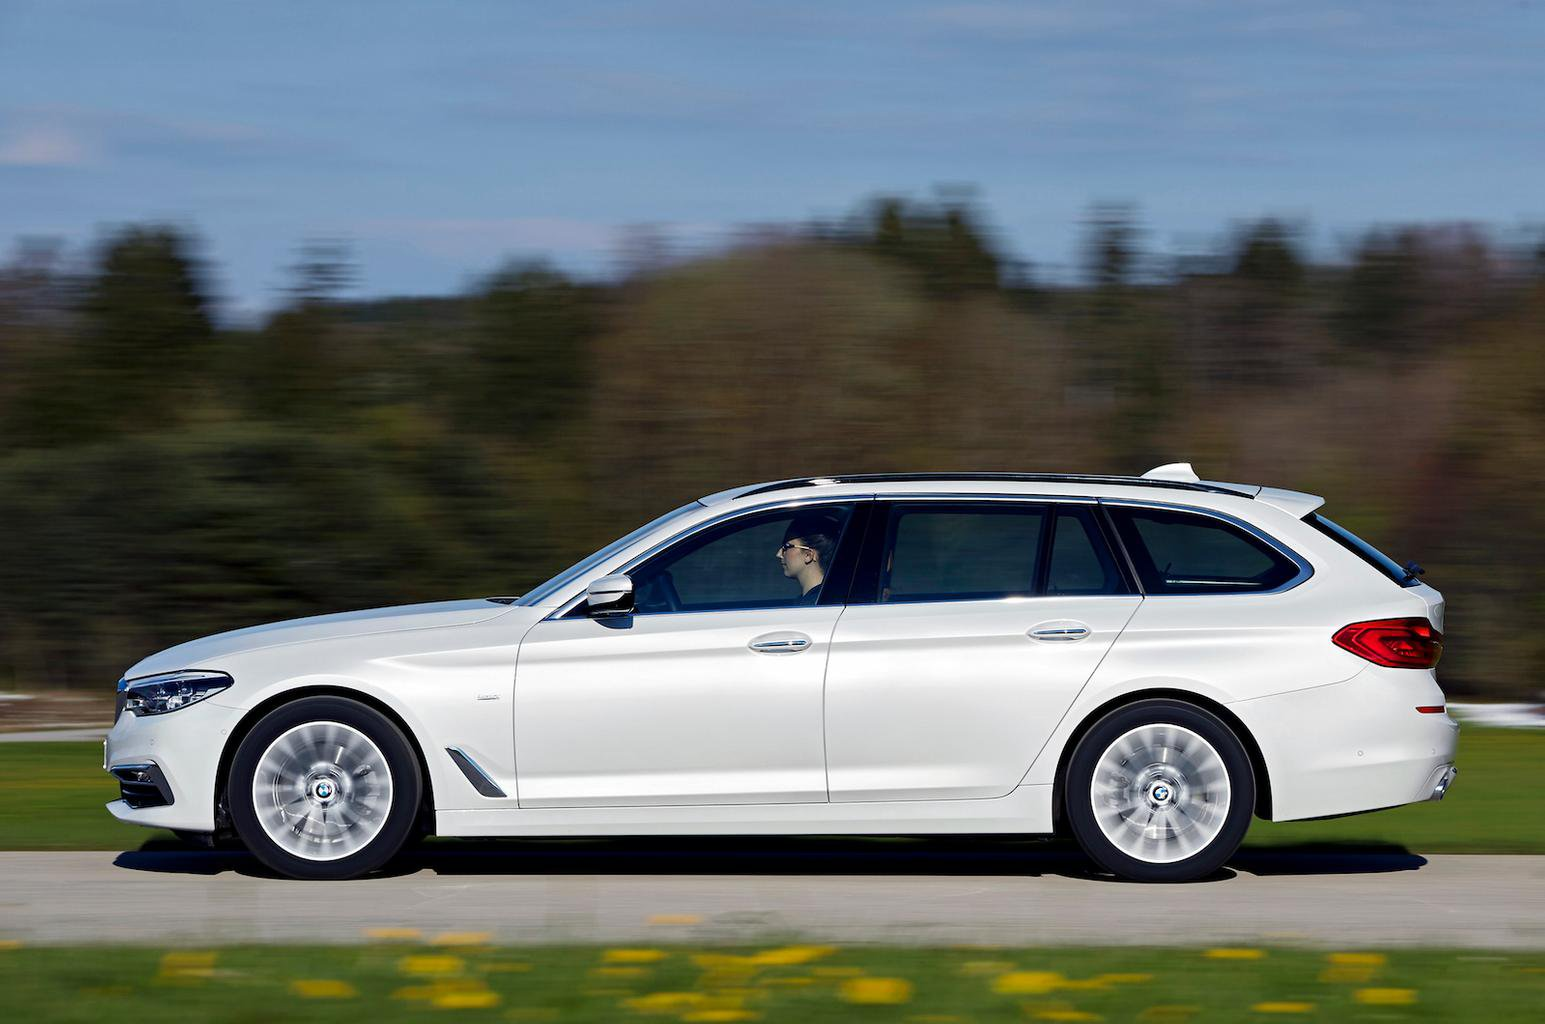 BMW 5 Series Touring verdict and specs